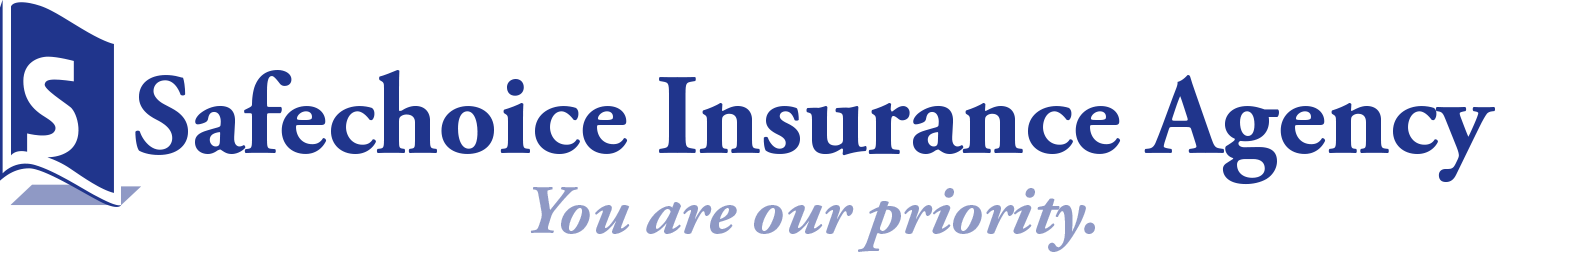 Safechoice Insurance Agency logo